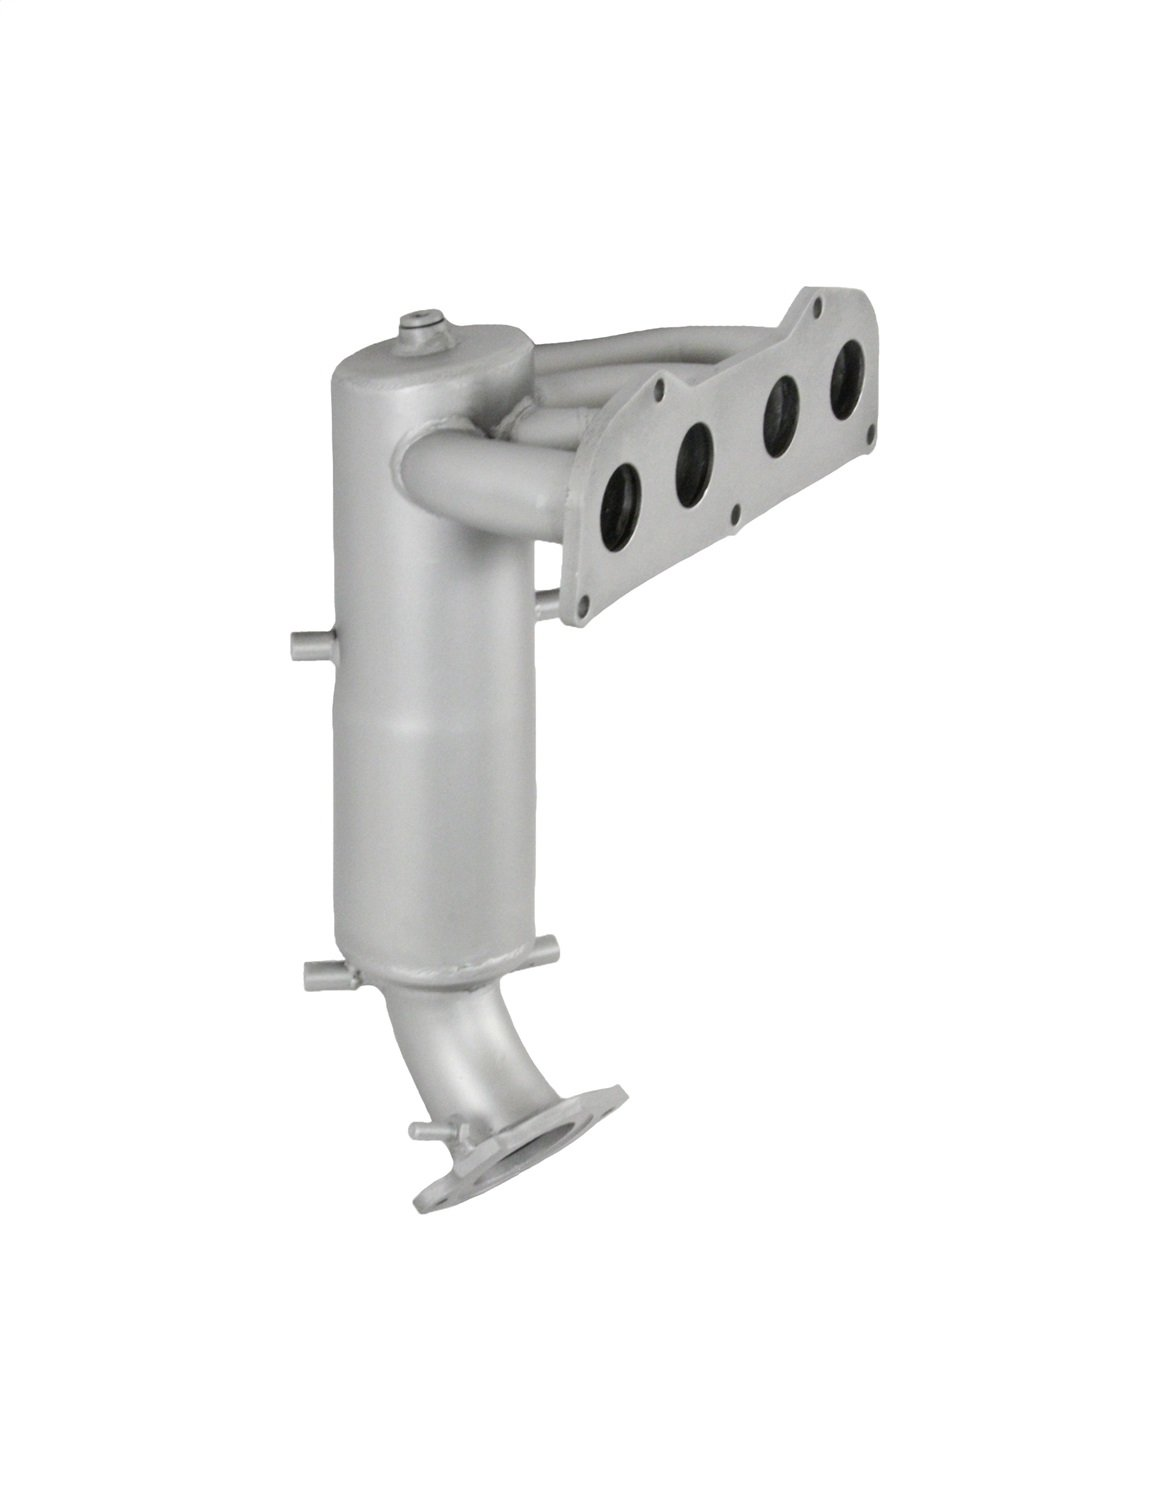 Pacesetter 750032 Manifold Catalytic Converter for Toyota Camry 2.4L Hybrid Engine